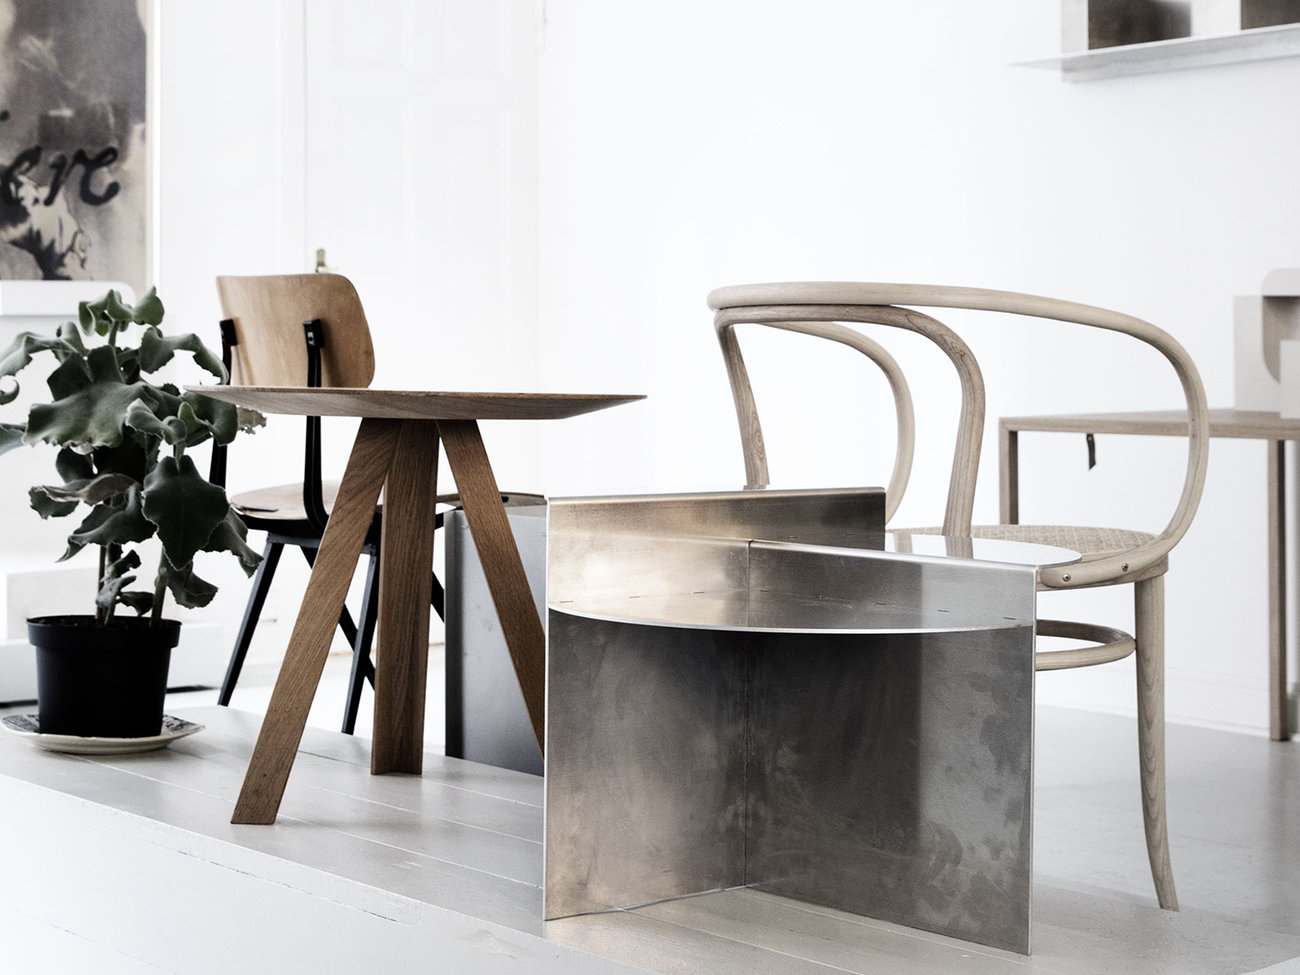 Atelier September Boutique Shop in Copenhagen